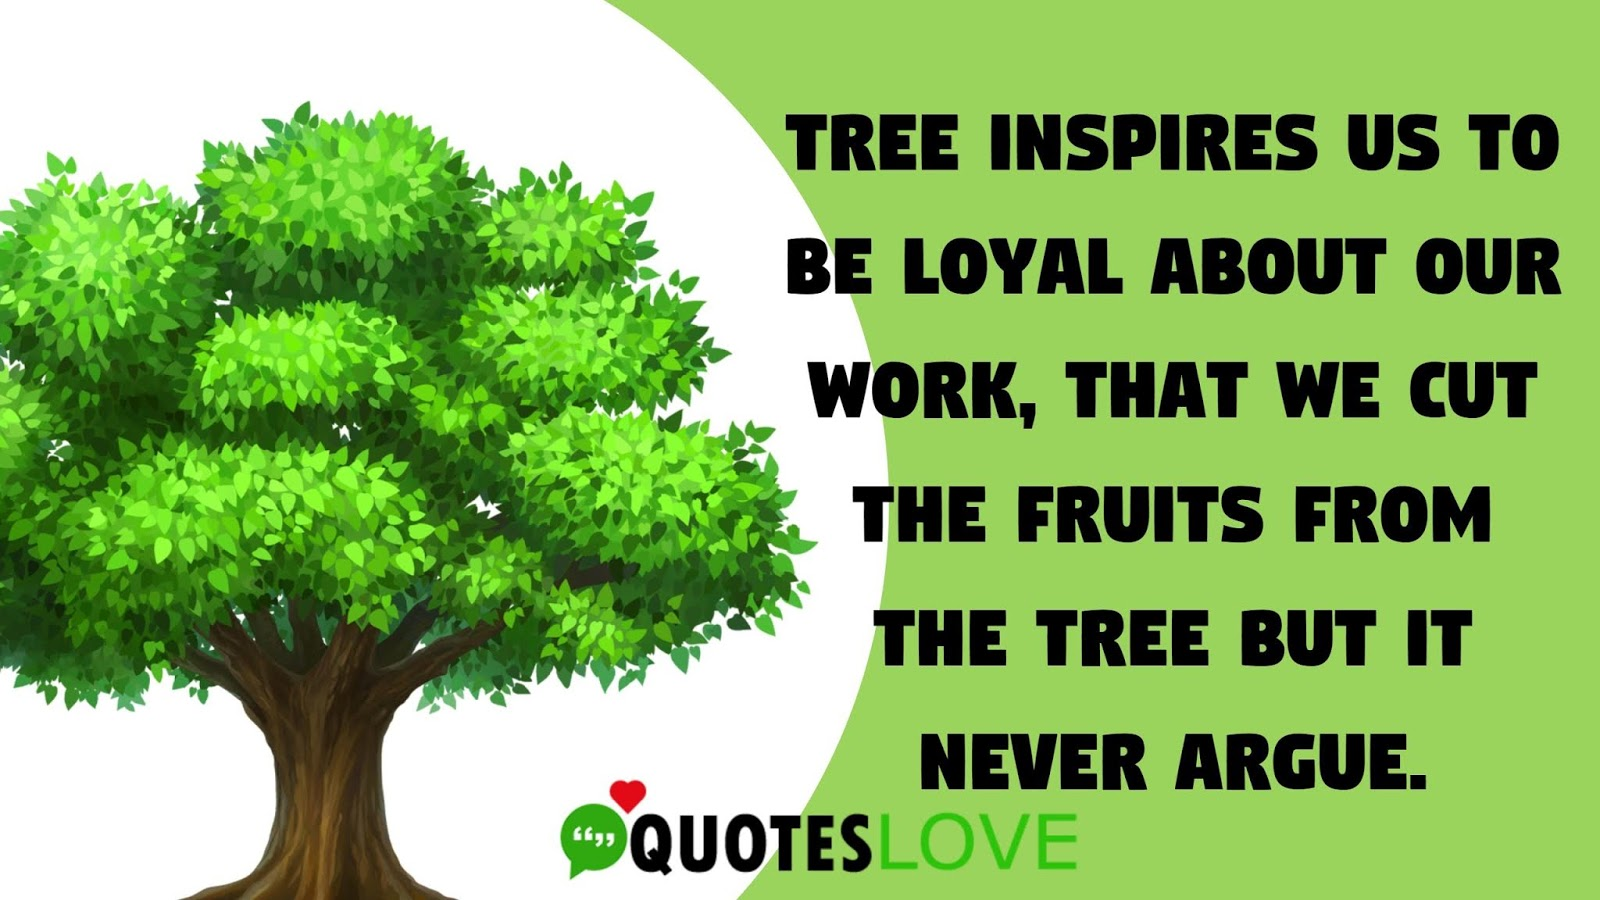 Tree inspires us to be loyal about our work, that we cut the fruits from the tree but it never argue.